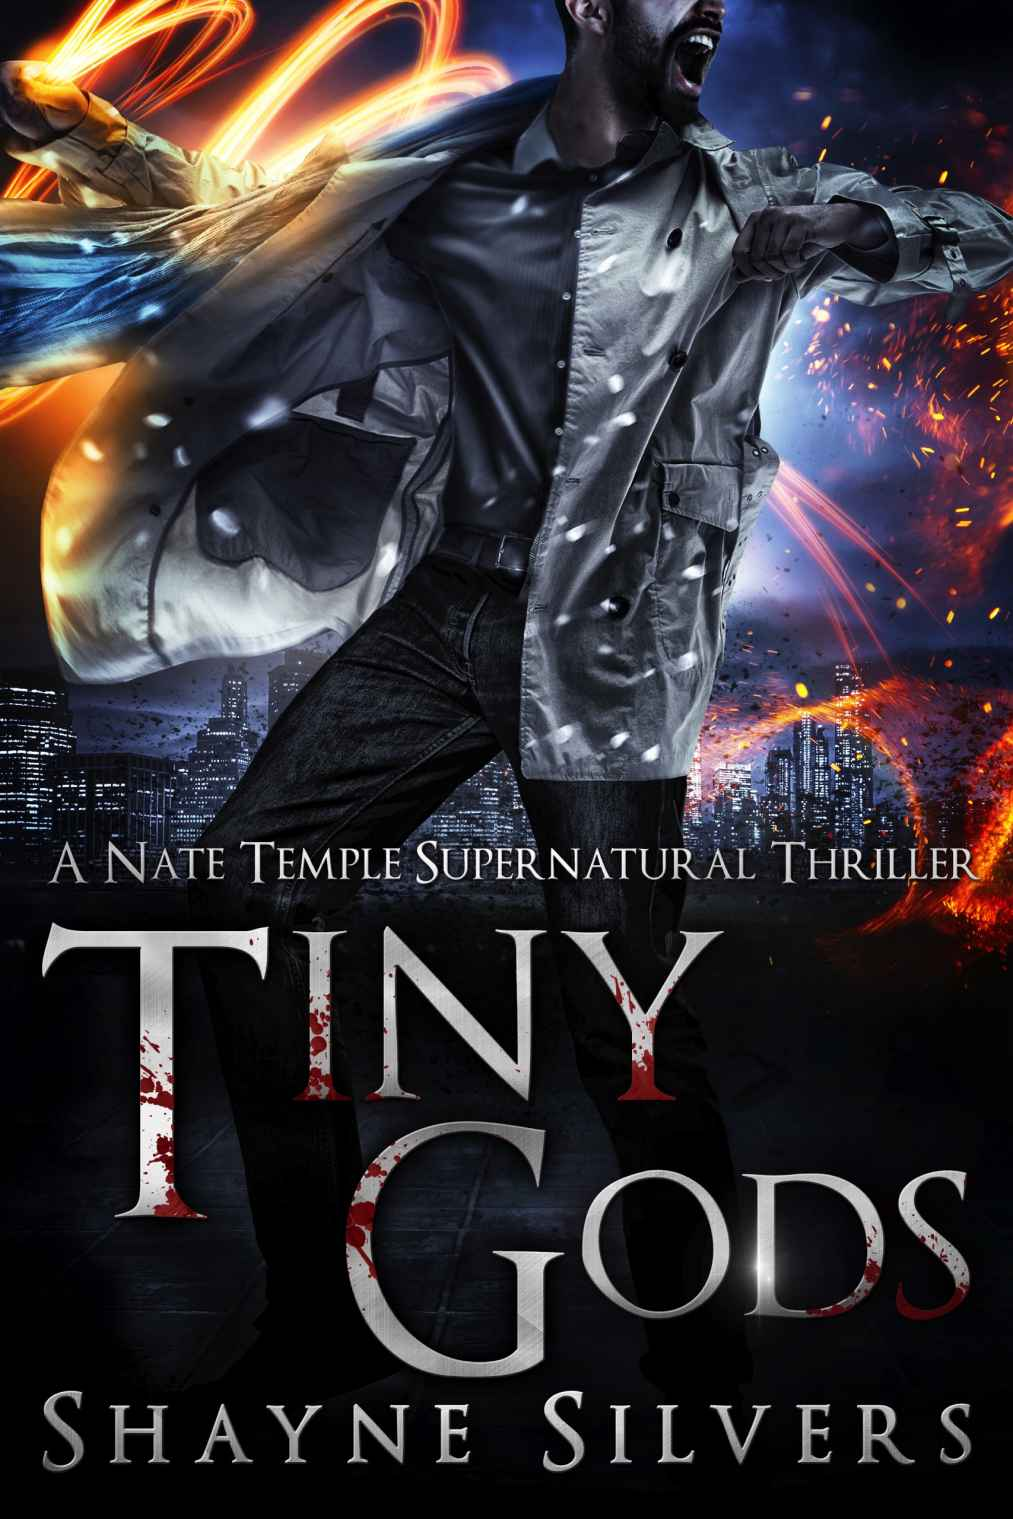 Tiny Gods: Good installment in the series.